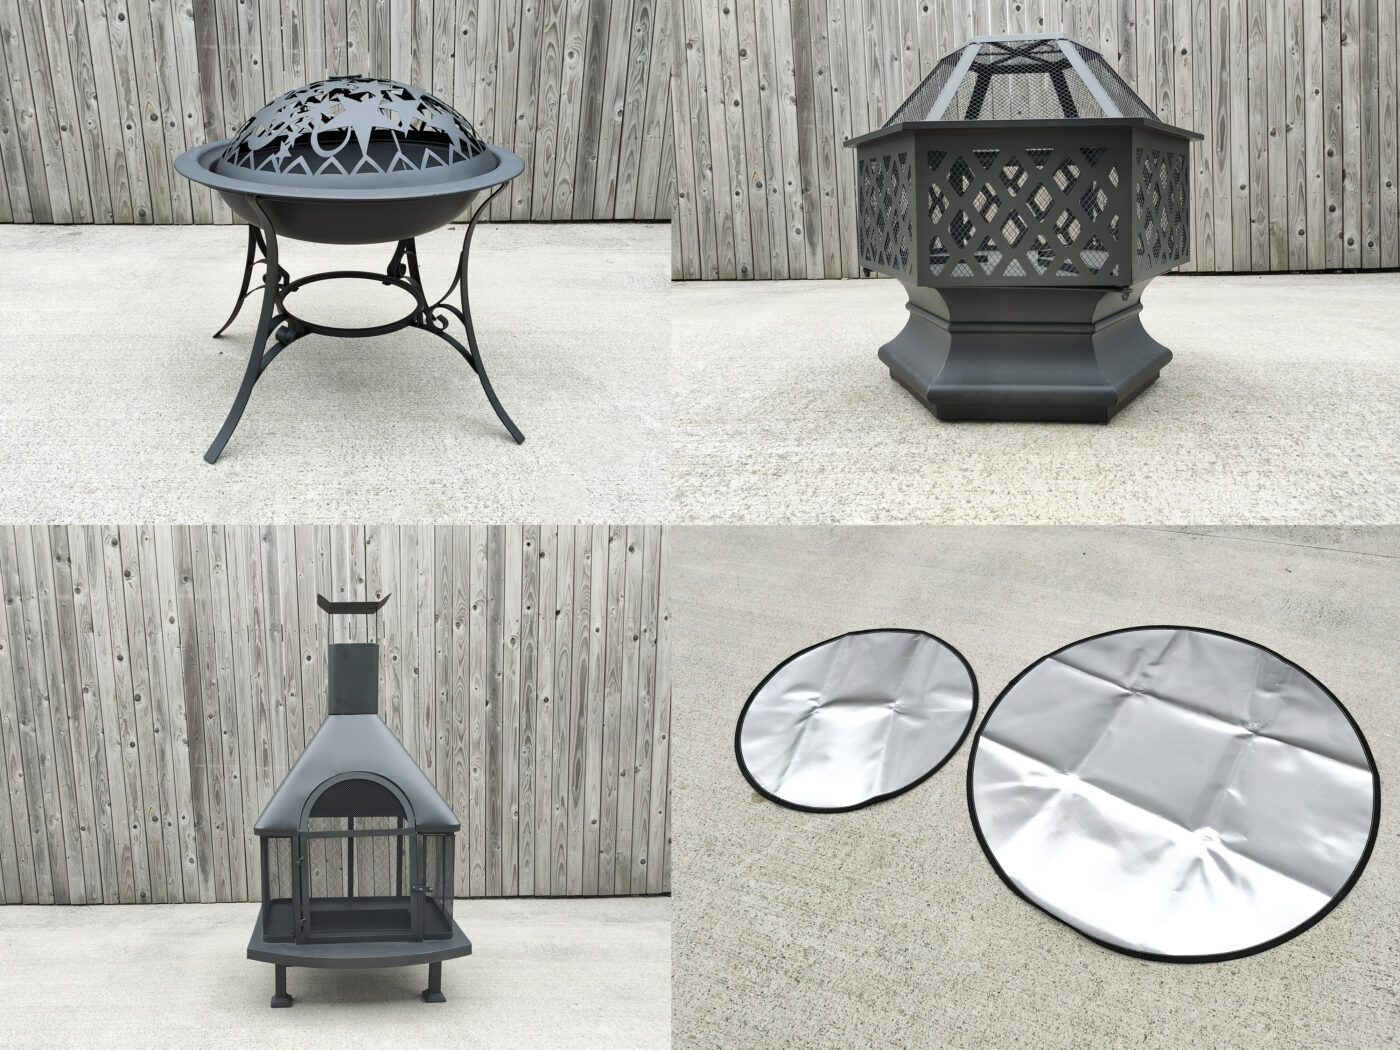 Fire Pits from Sheds Direct Ireland. The image shows the three different styles of fire pits as well as the fire mats